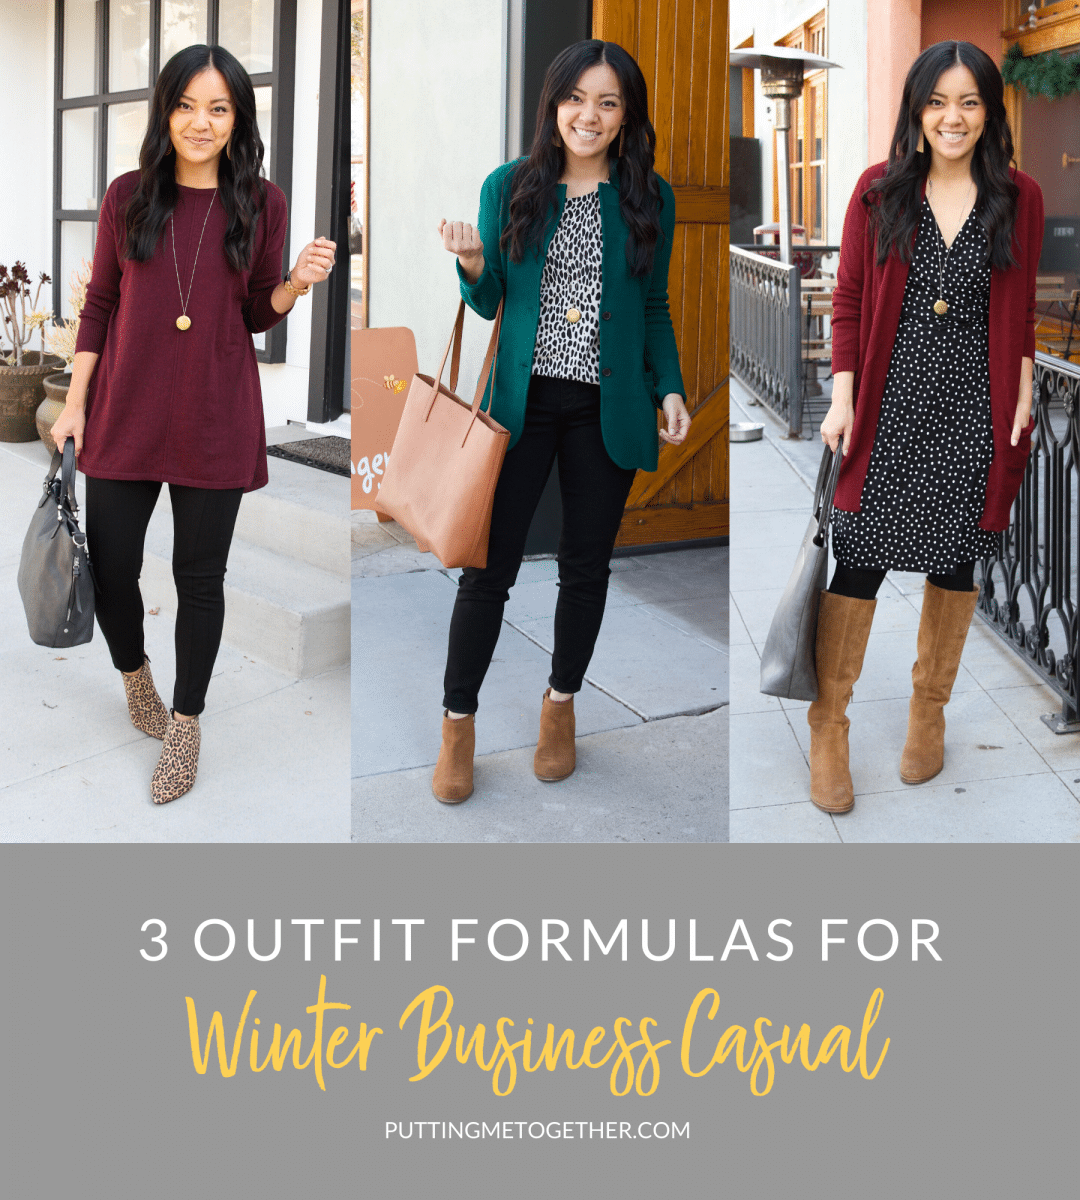 Three Winter Business Casual Outfit